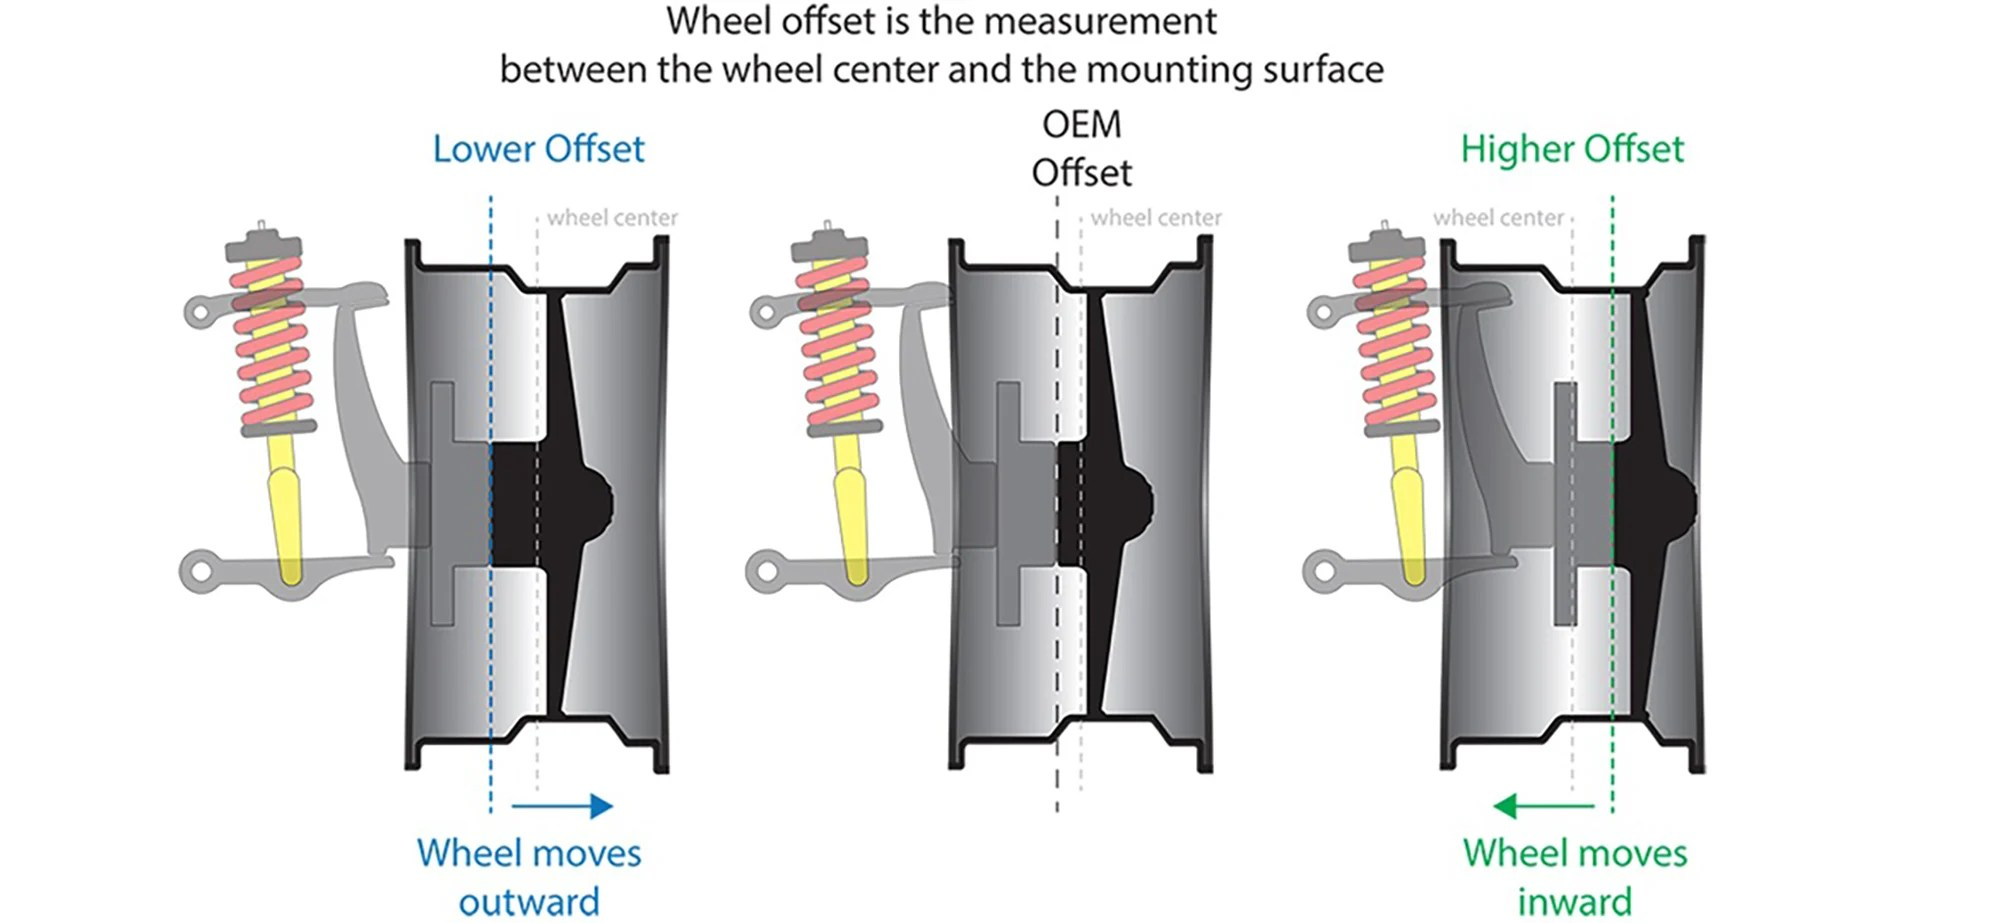 hight resolution of wheel offset is considered the distance from the center of your wheel to its mounting surface which is the part of the wheel that comes together with the